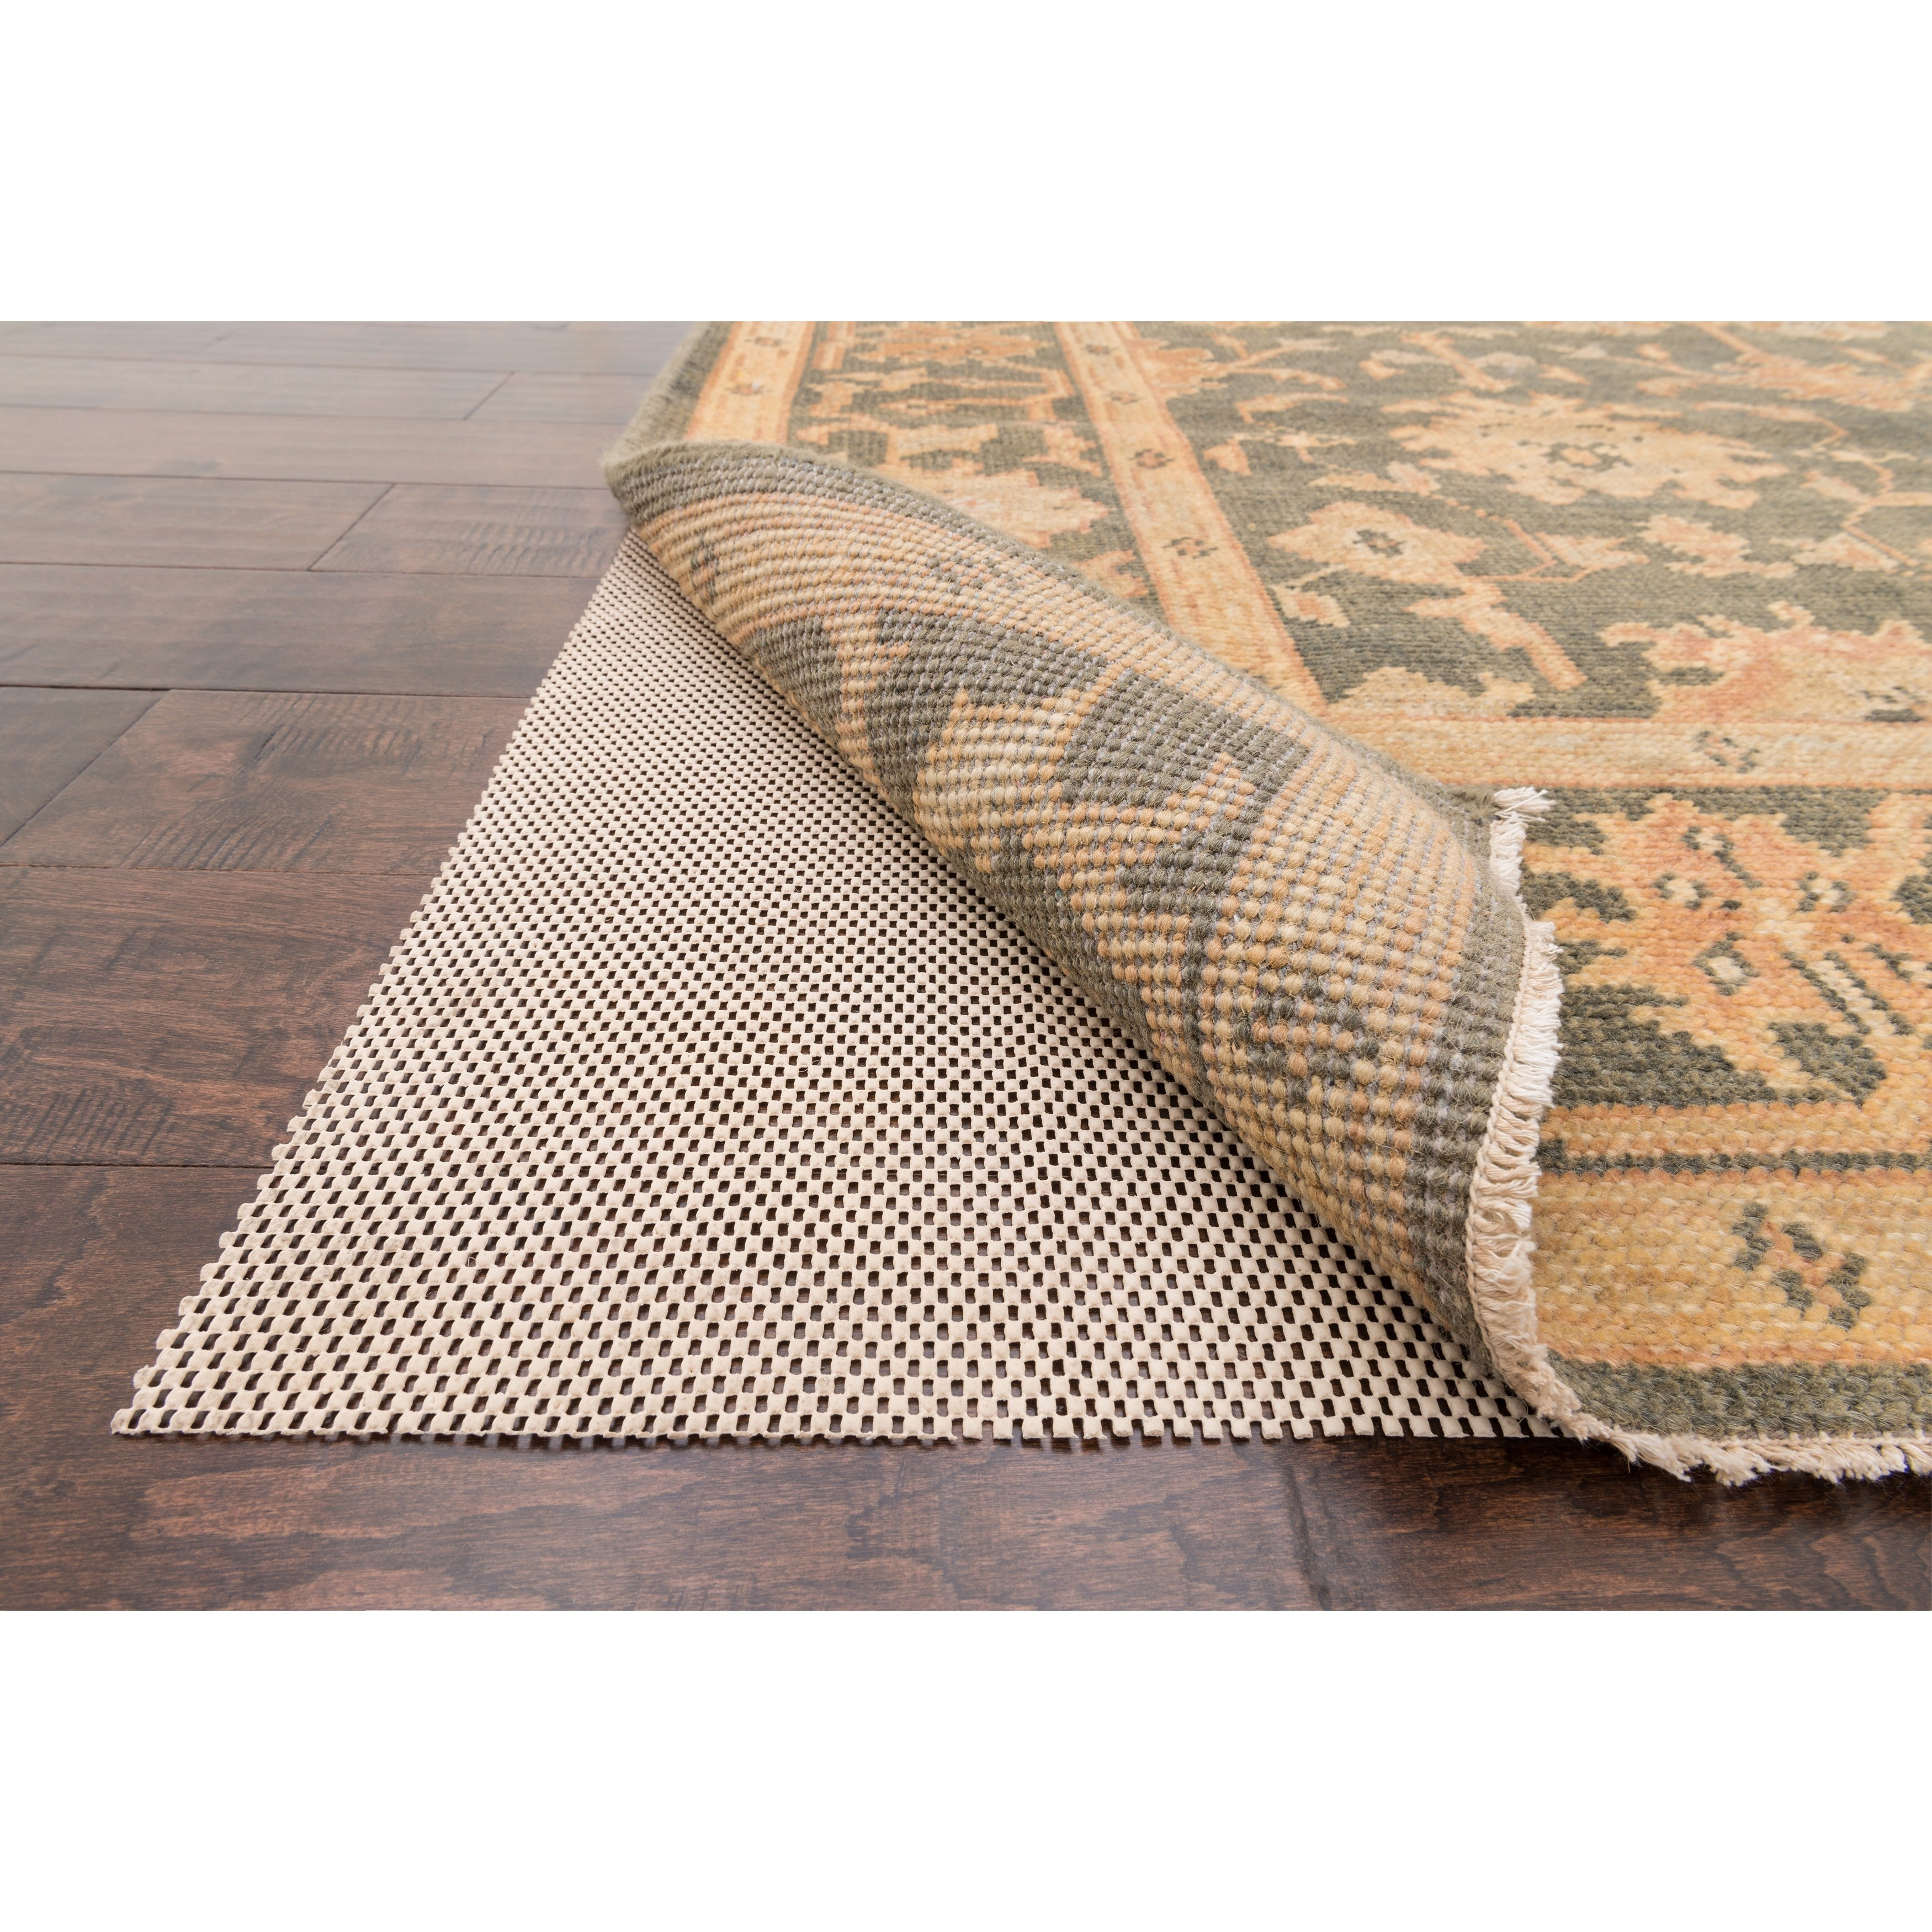 Alexander Home Supreme Non-slip Beige Rug Pad (3' x 5') by Overstock